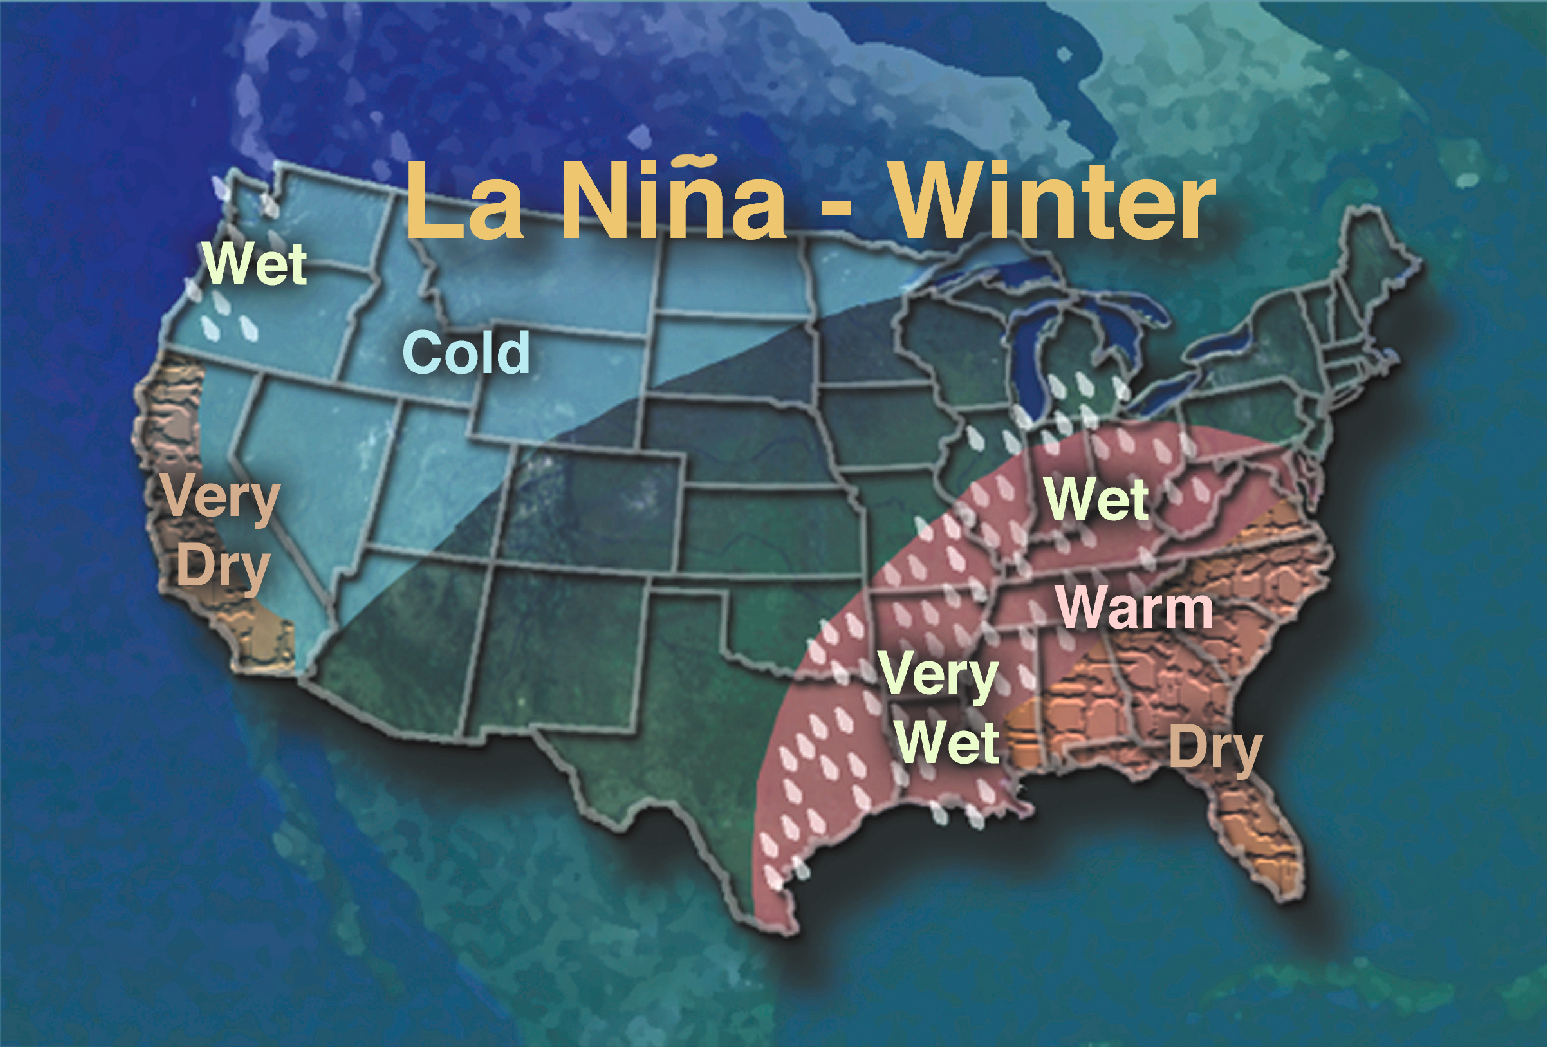 NASA NASA Observes La Niña This Little Girl Makes A Big - La on us map